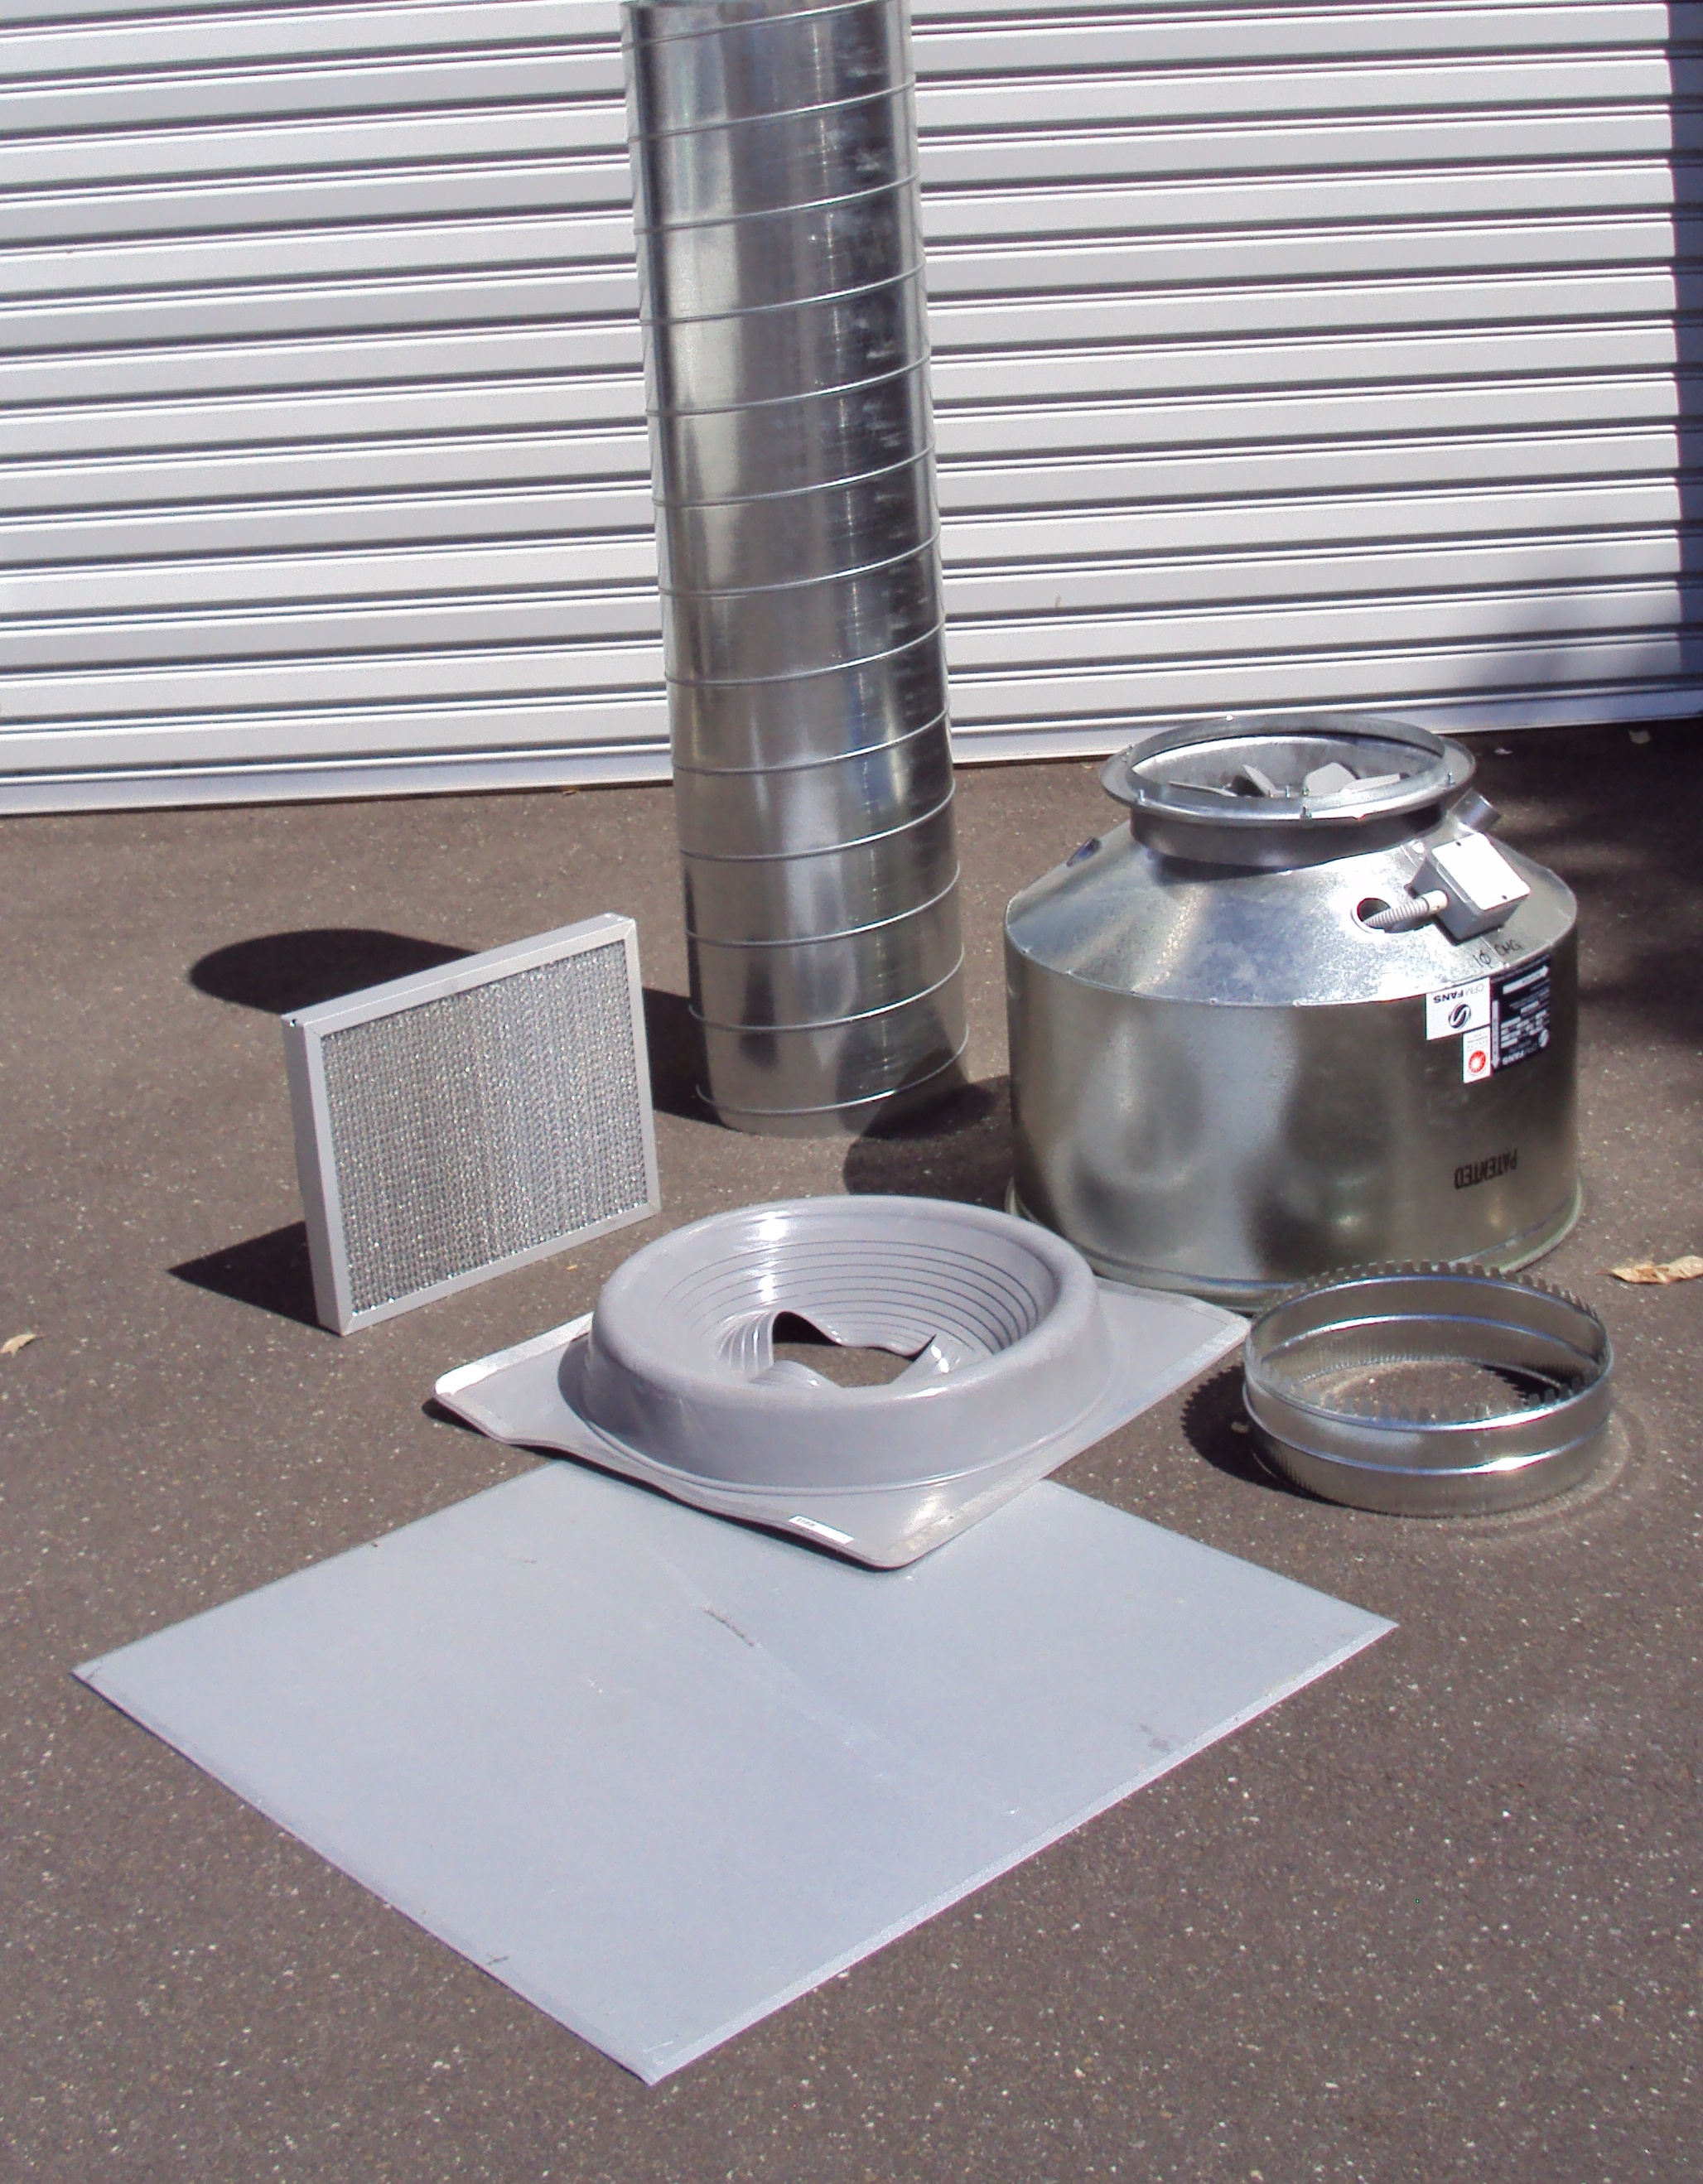 Exhaust canopy kit with duct filters and fan 2700 long HD line #1: canopy kit Hospitality Design mercial Kitchens